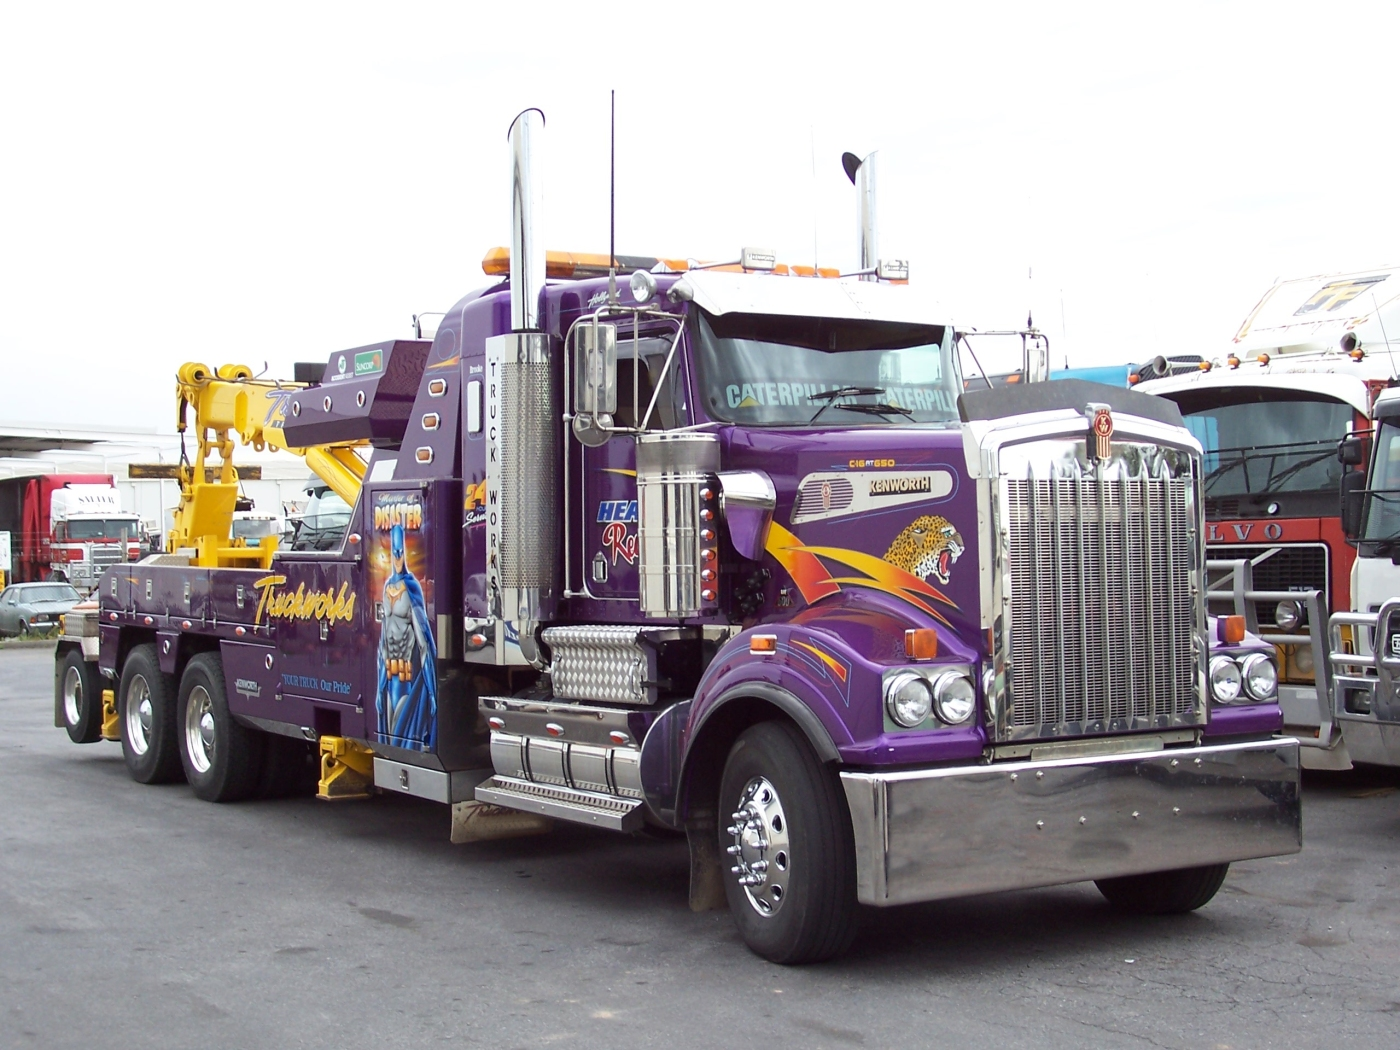 Australian Kenworth T908 heavy towing and recovery truck